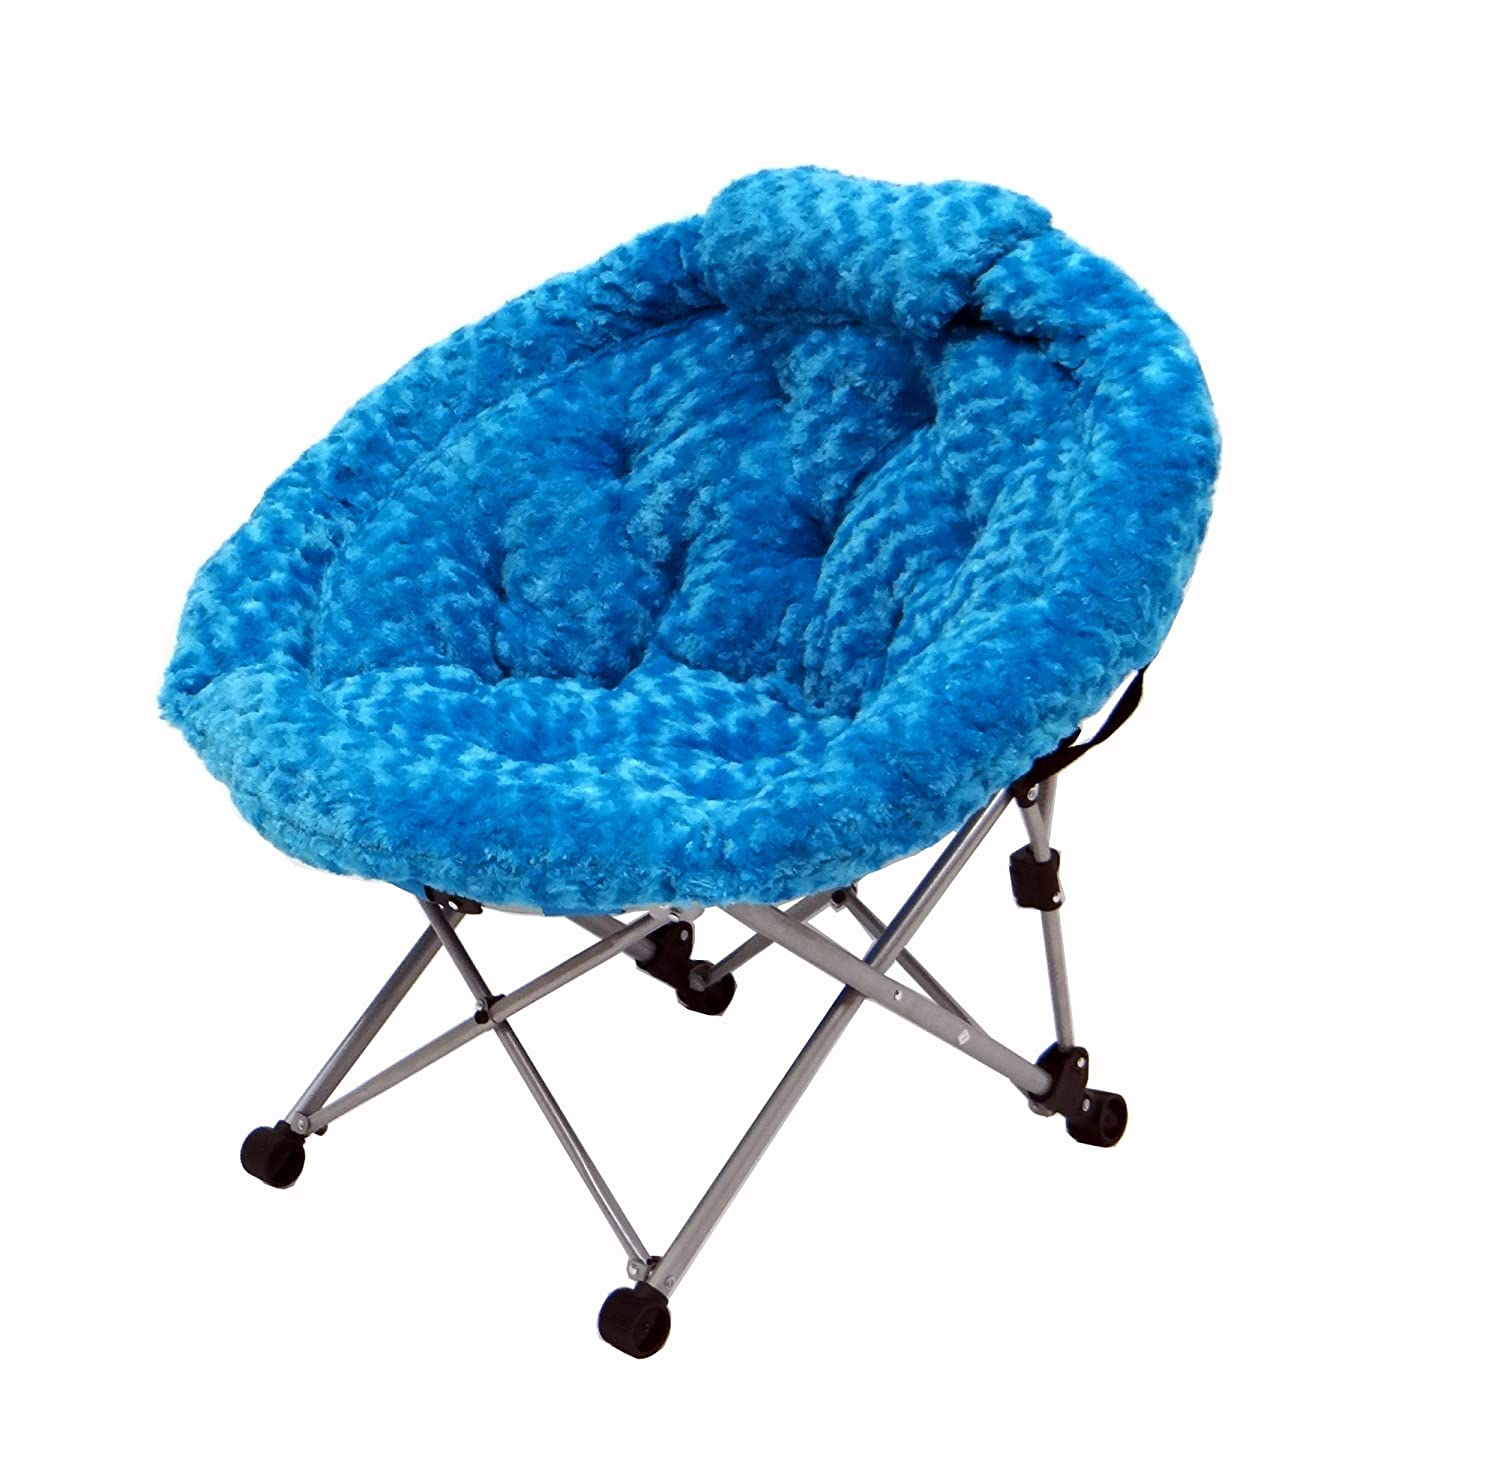 Amazon Junior Moon Chair in Deluxe Blue Fur Kitchen & Dining